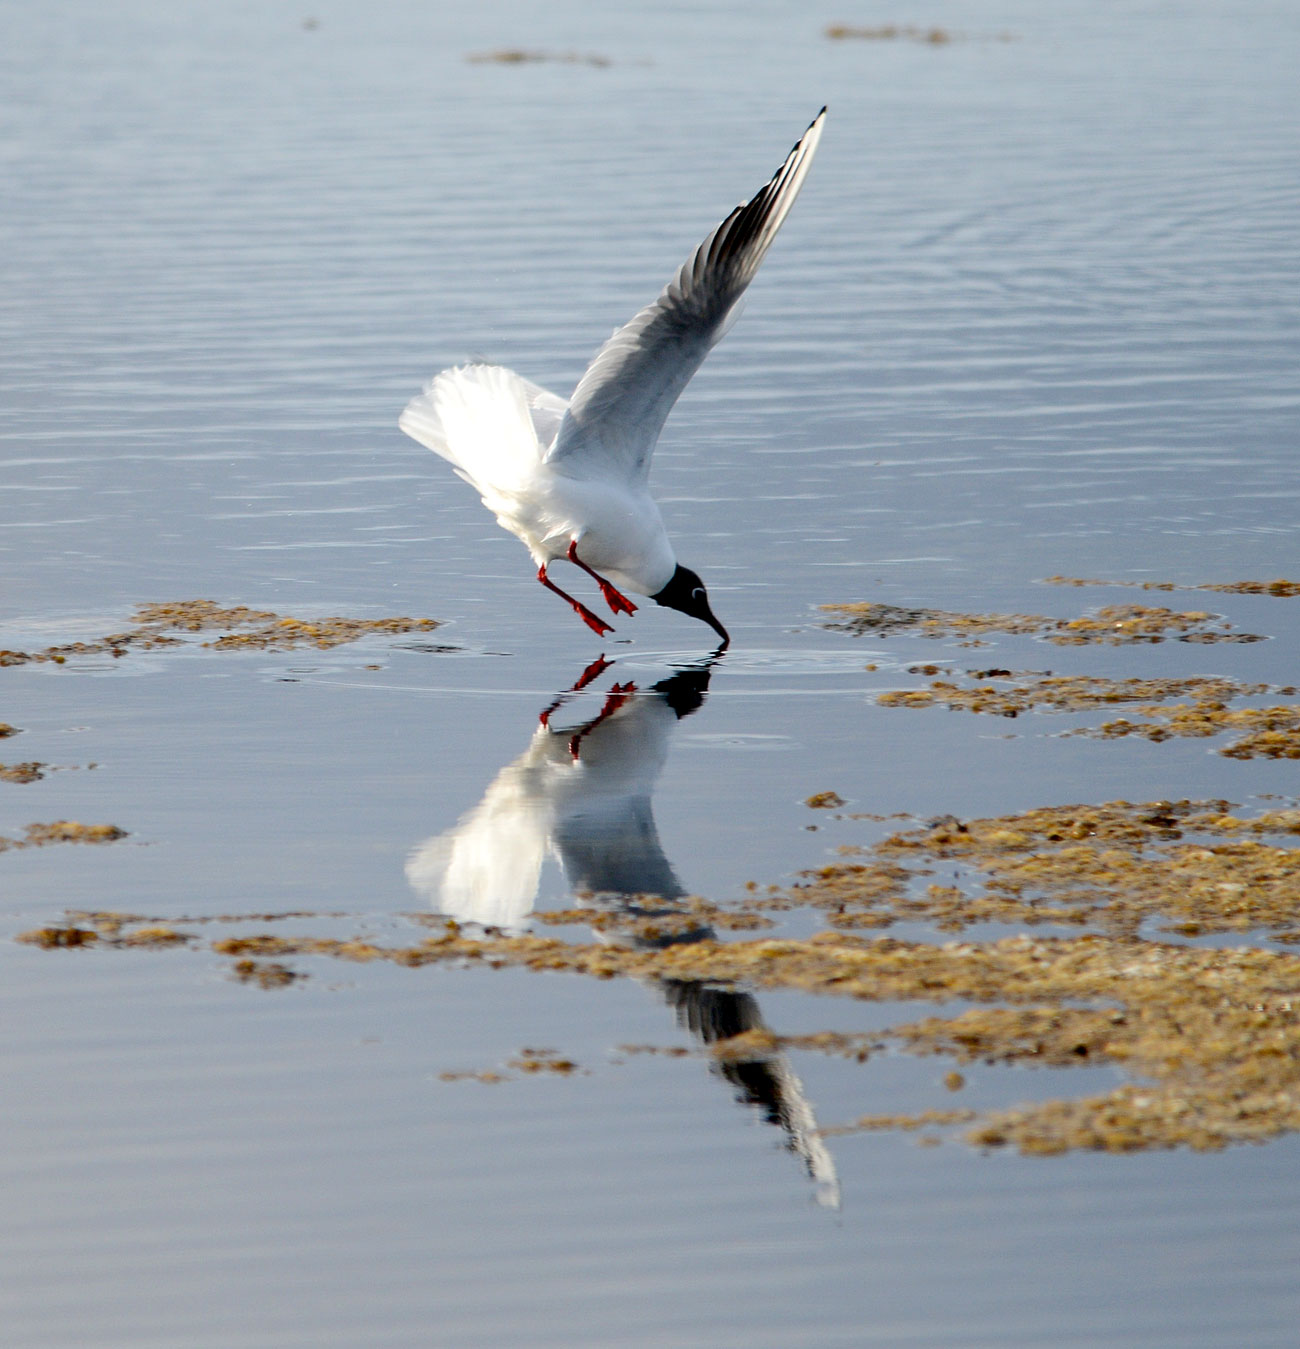 Point of entry for Black-headed gull.